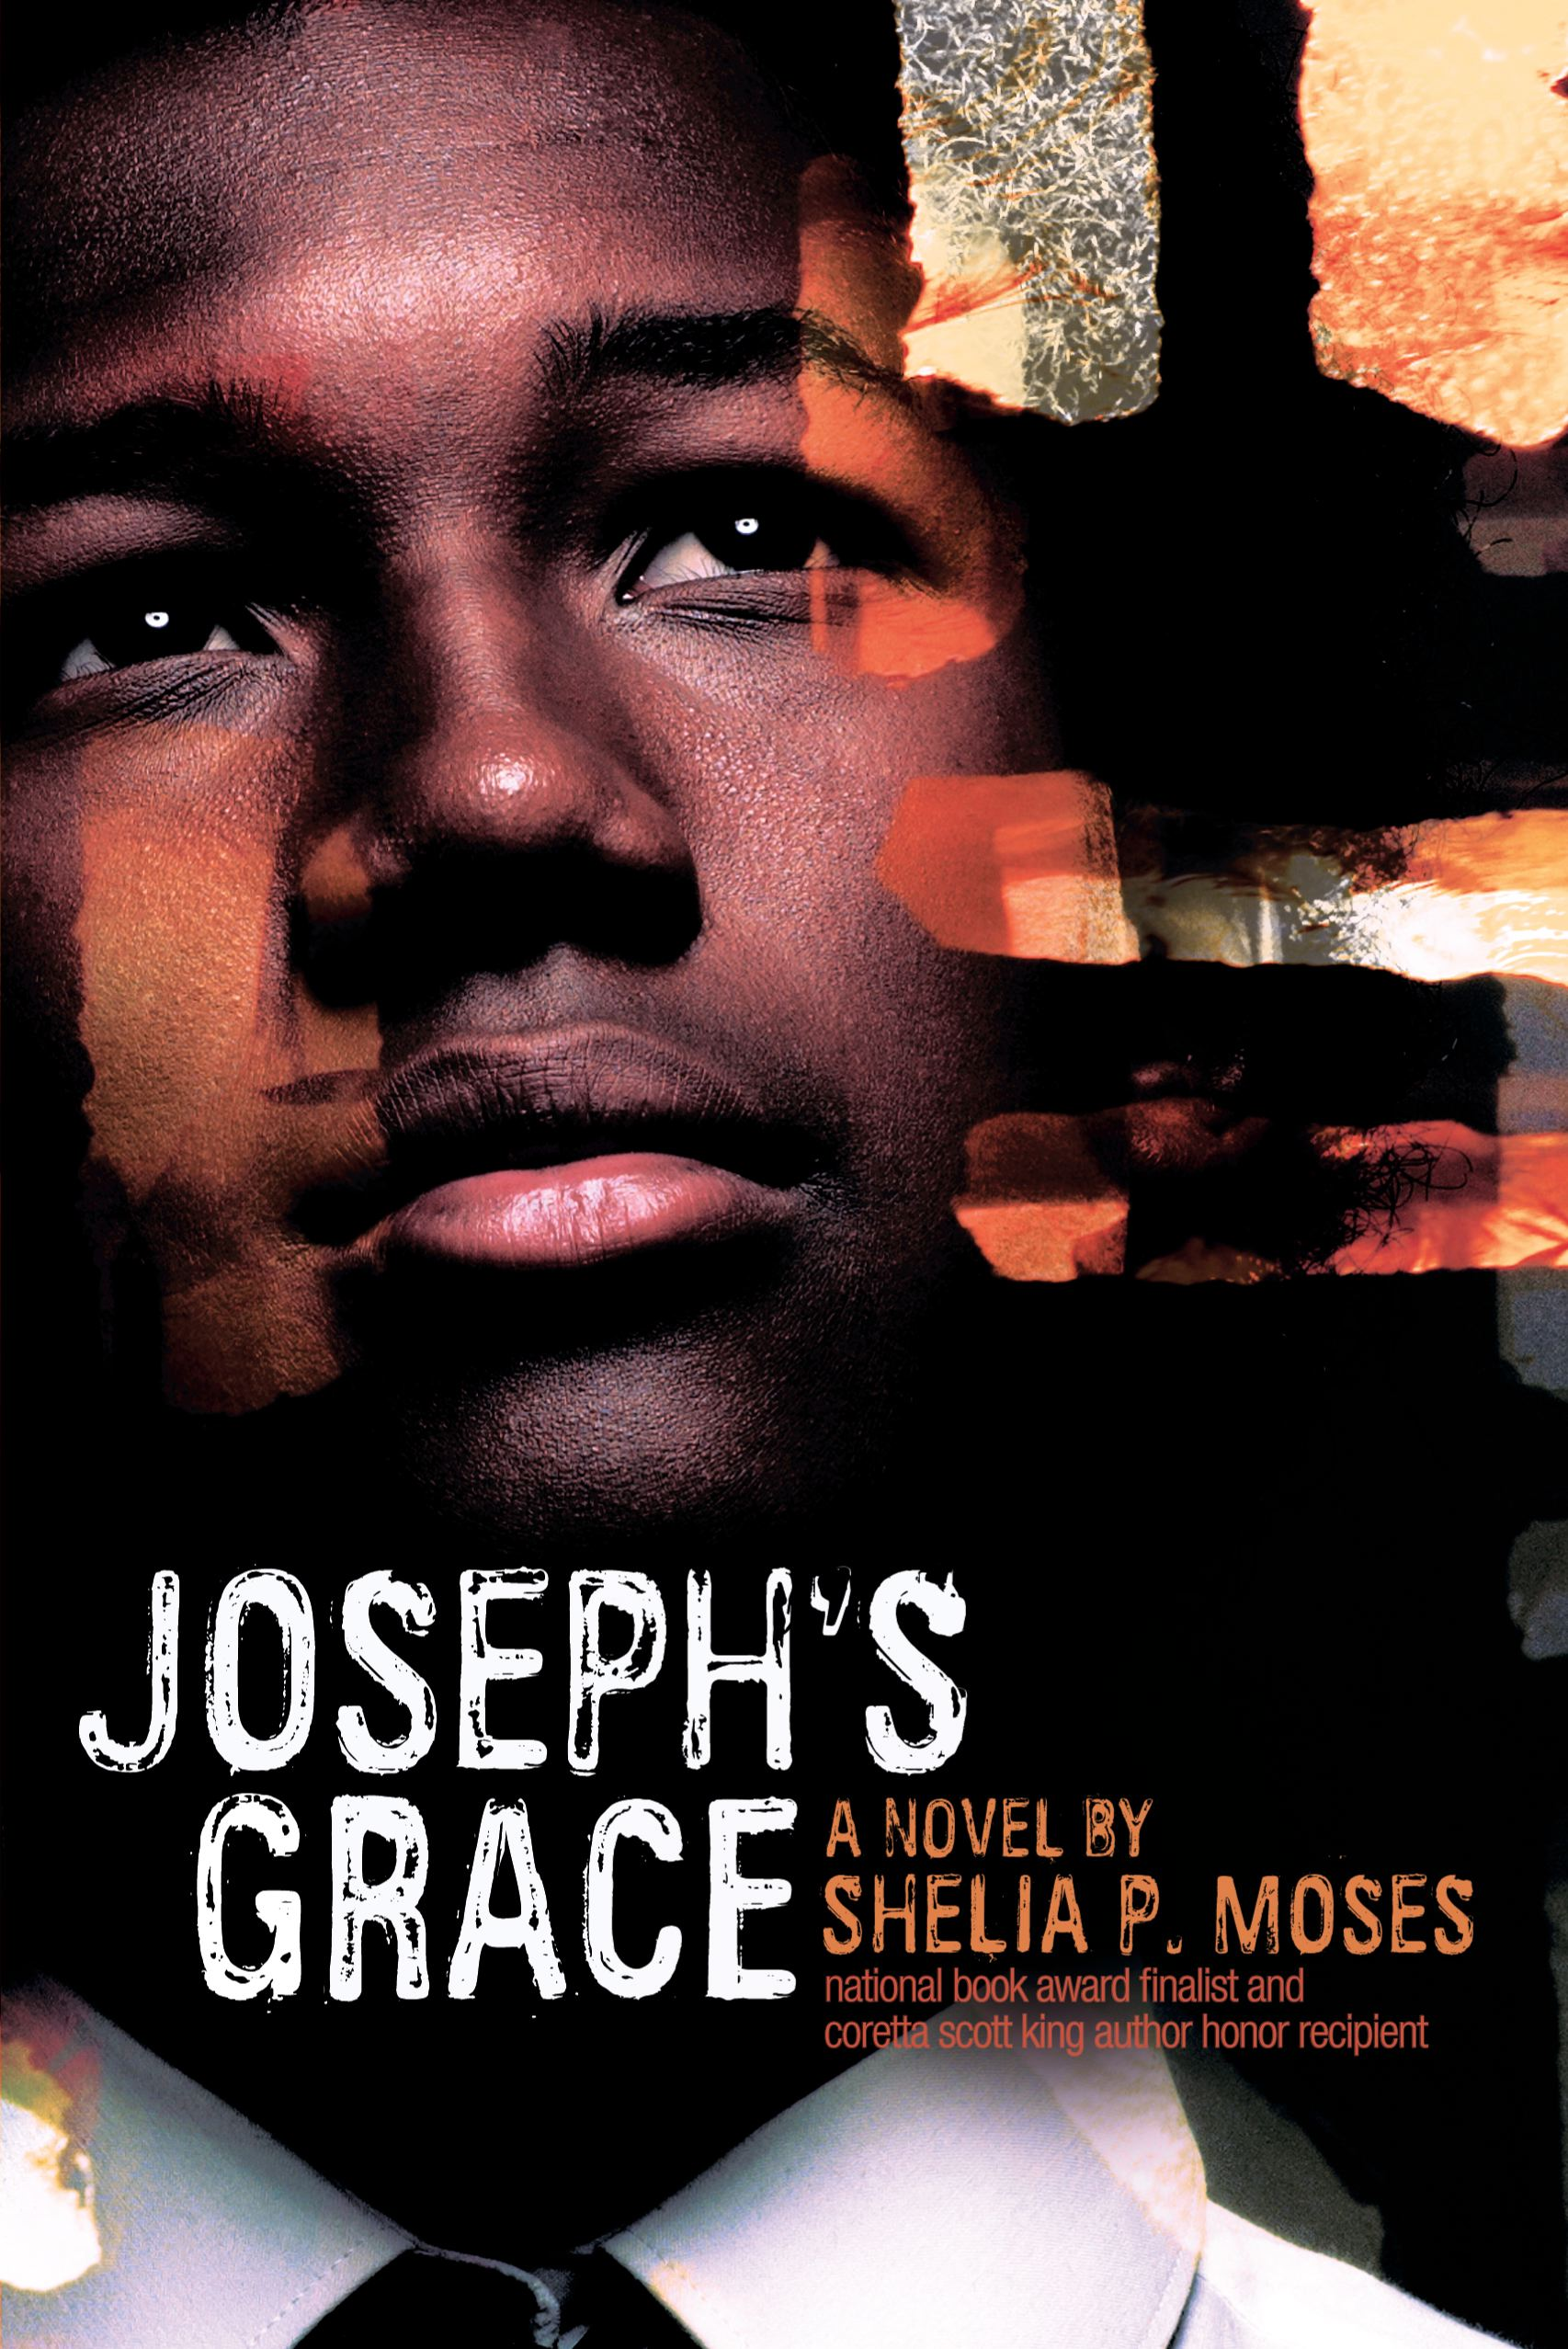 Josephs-grace-9781416939429_hr